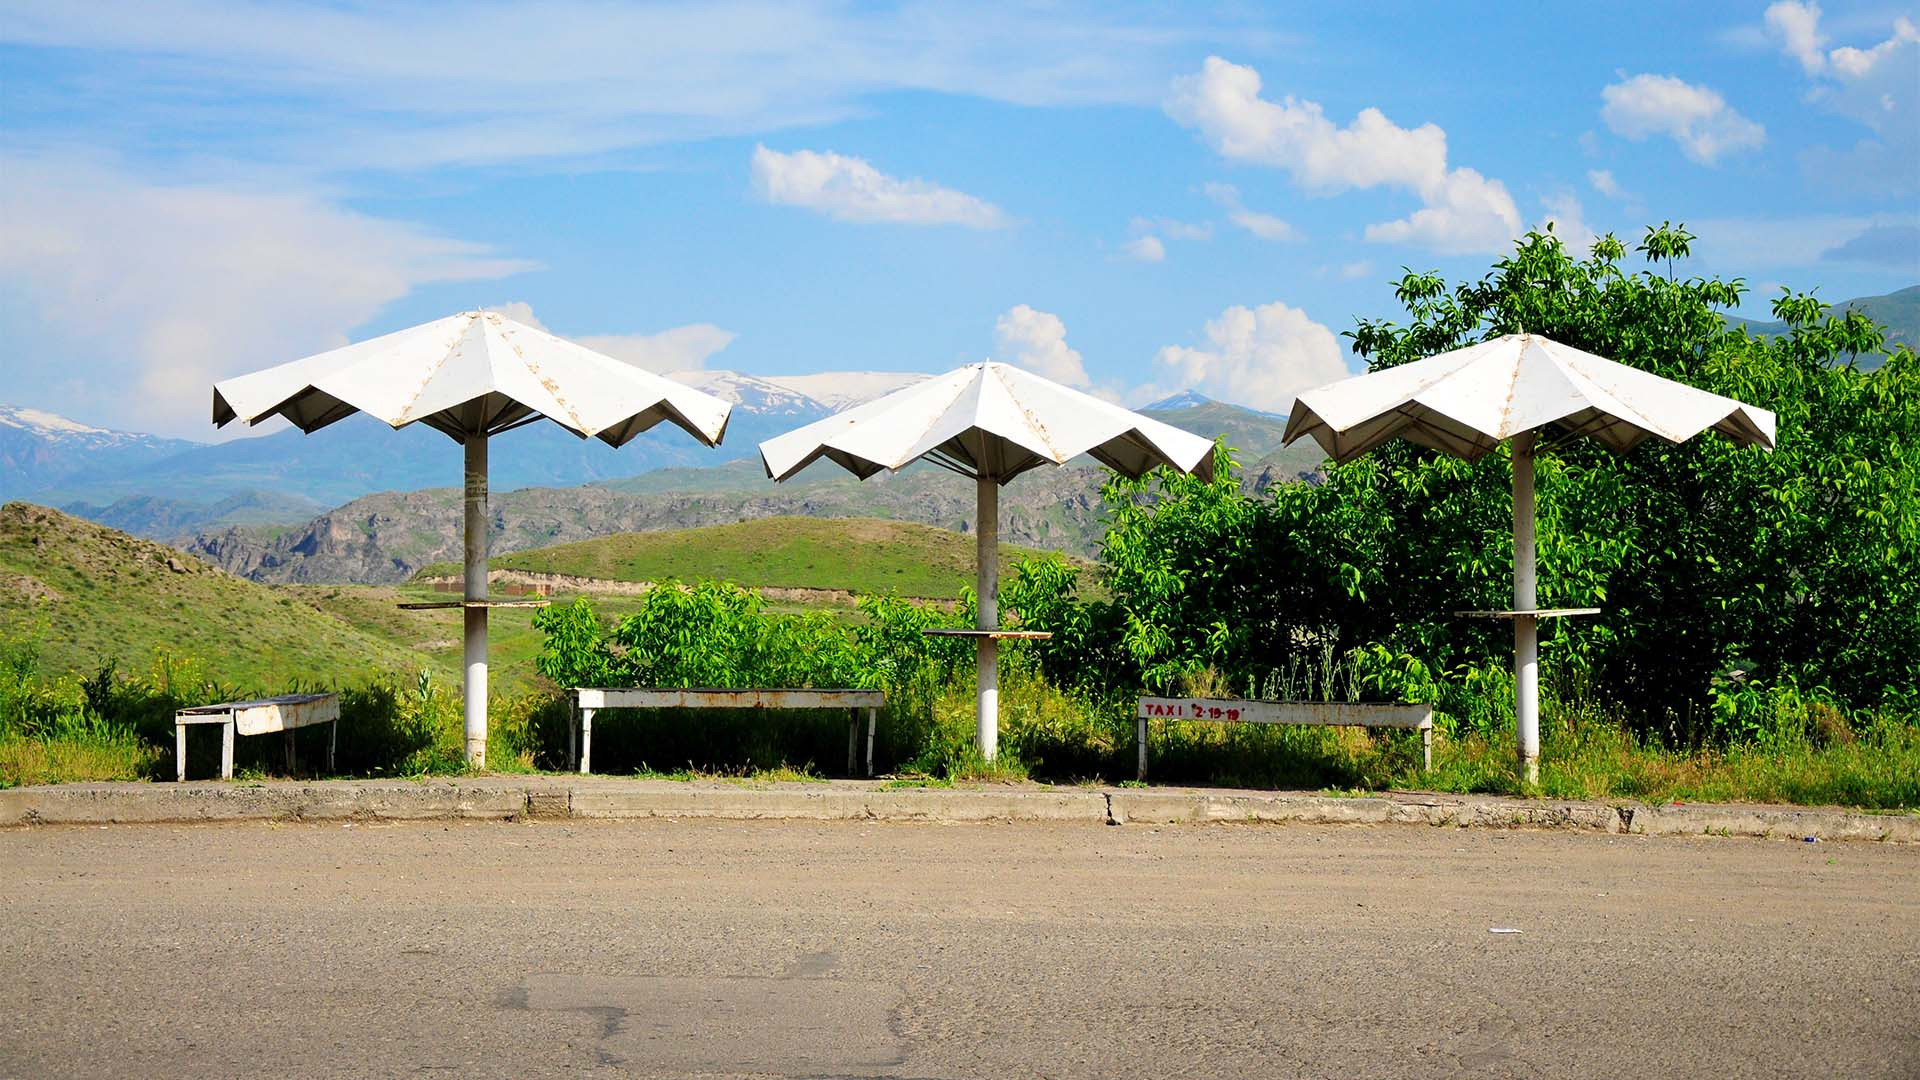 Umbrella shaped bus stops in Armenia